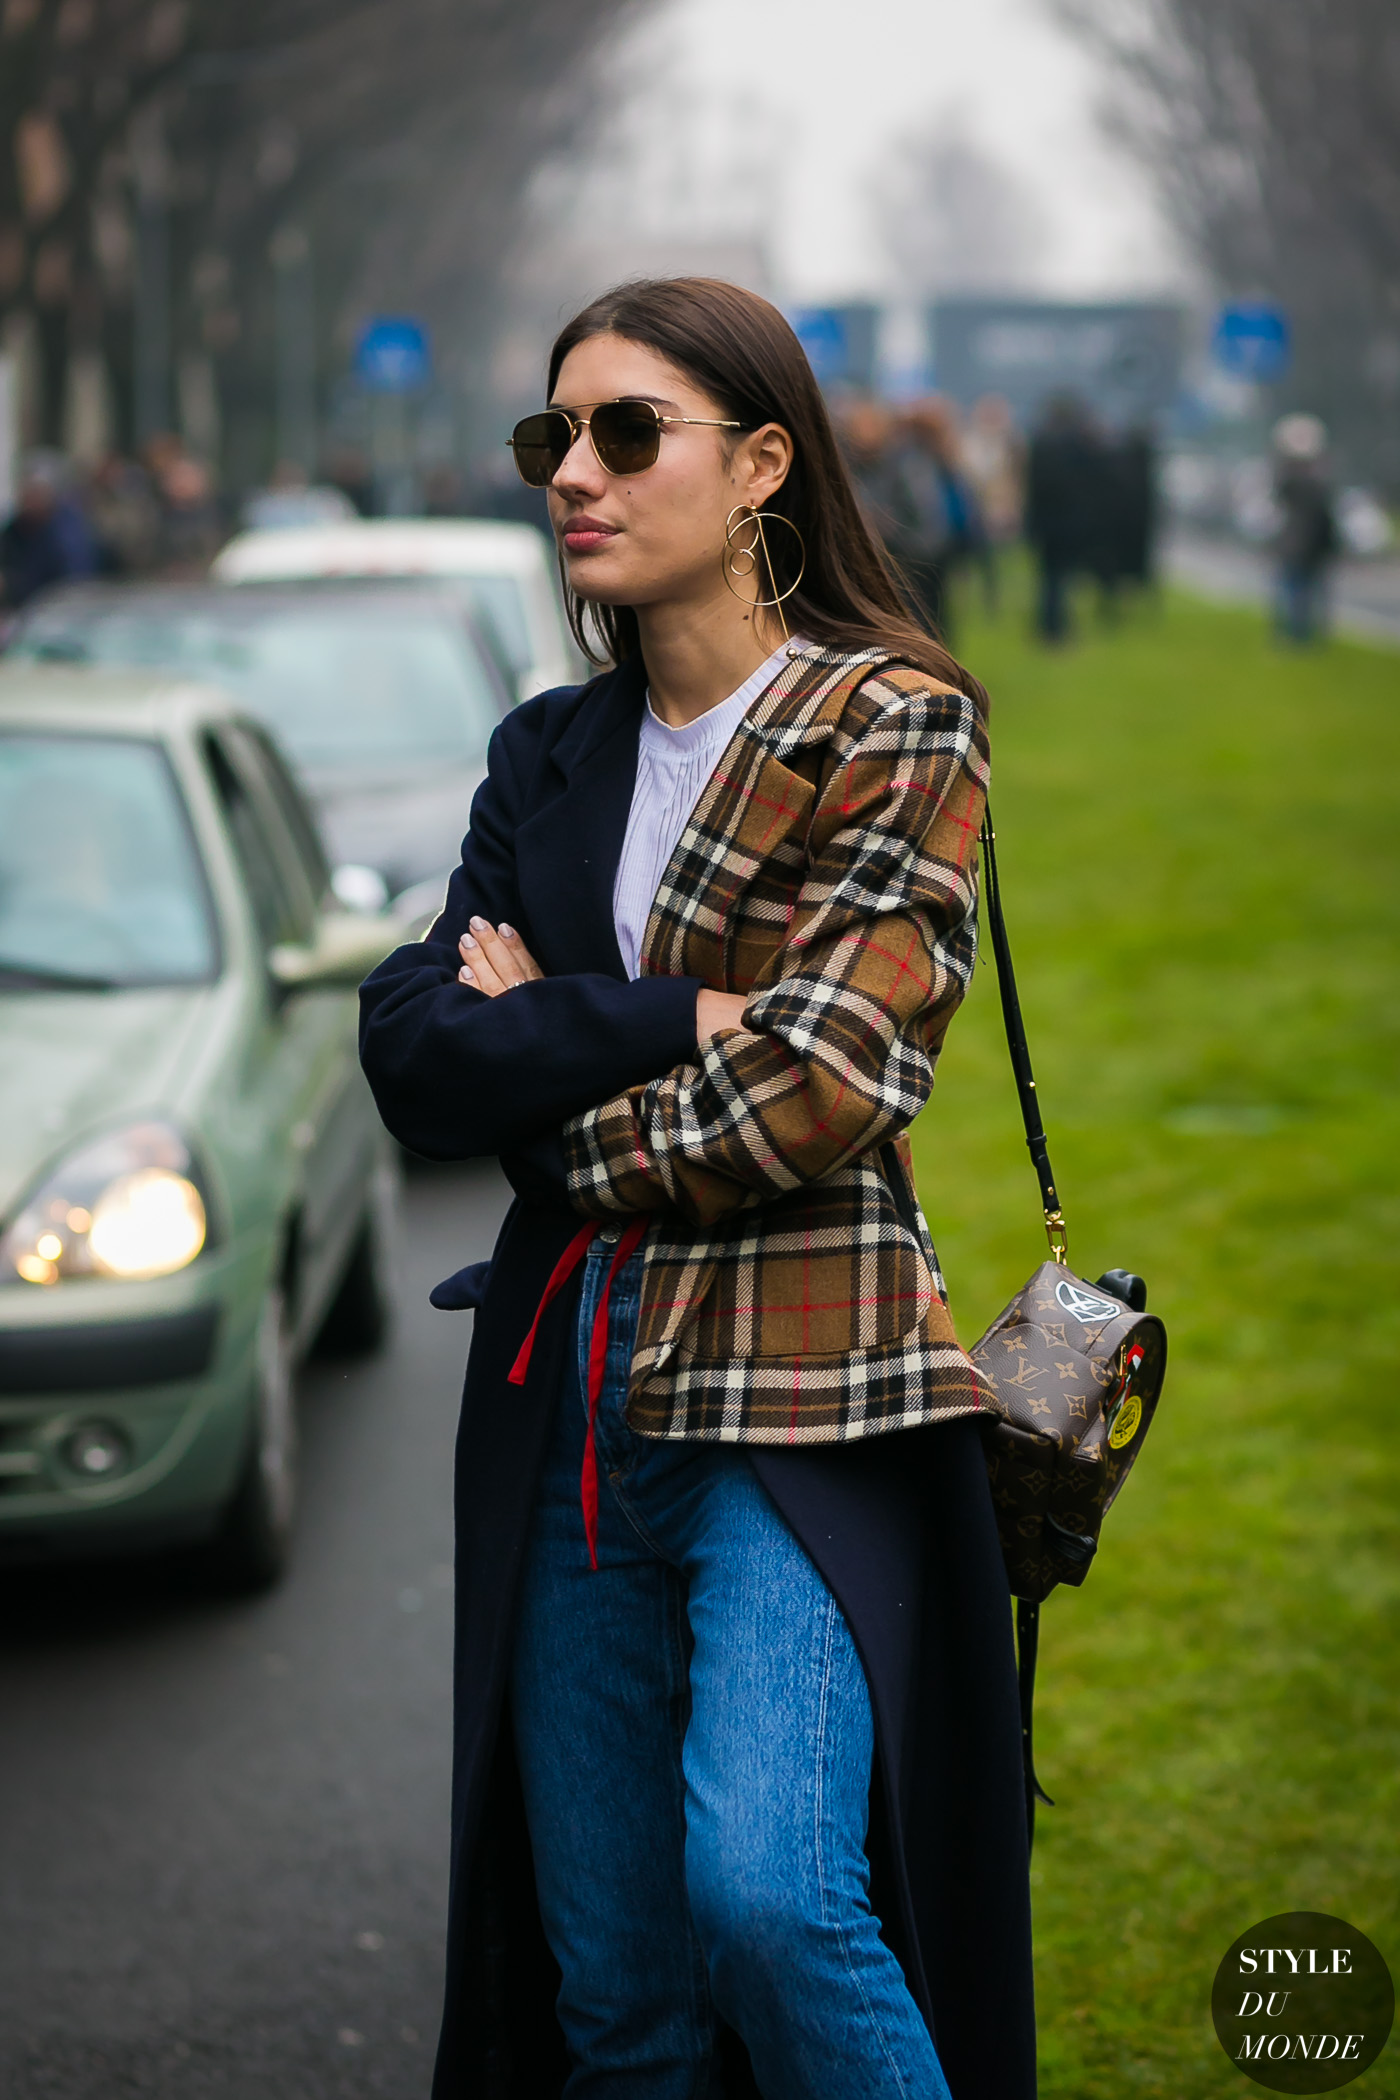 Patricia Manfield by STYLEDUMONDE Street Style Fashion Photography0E2A8169